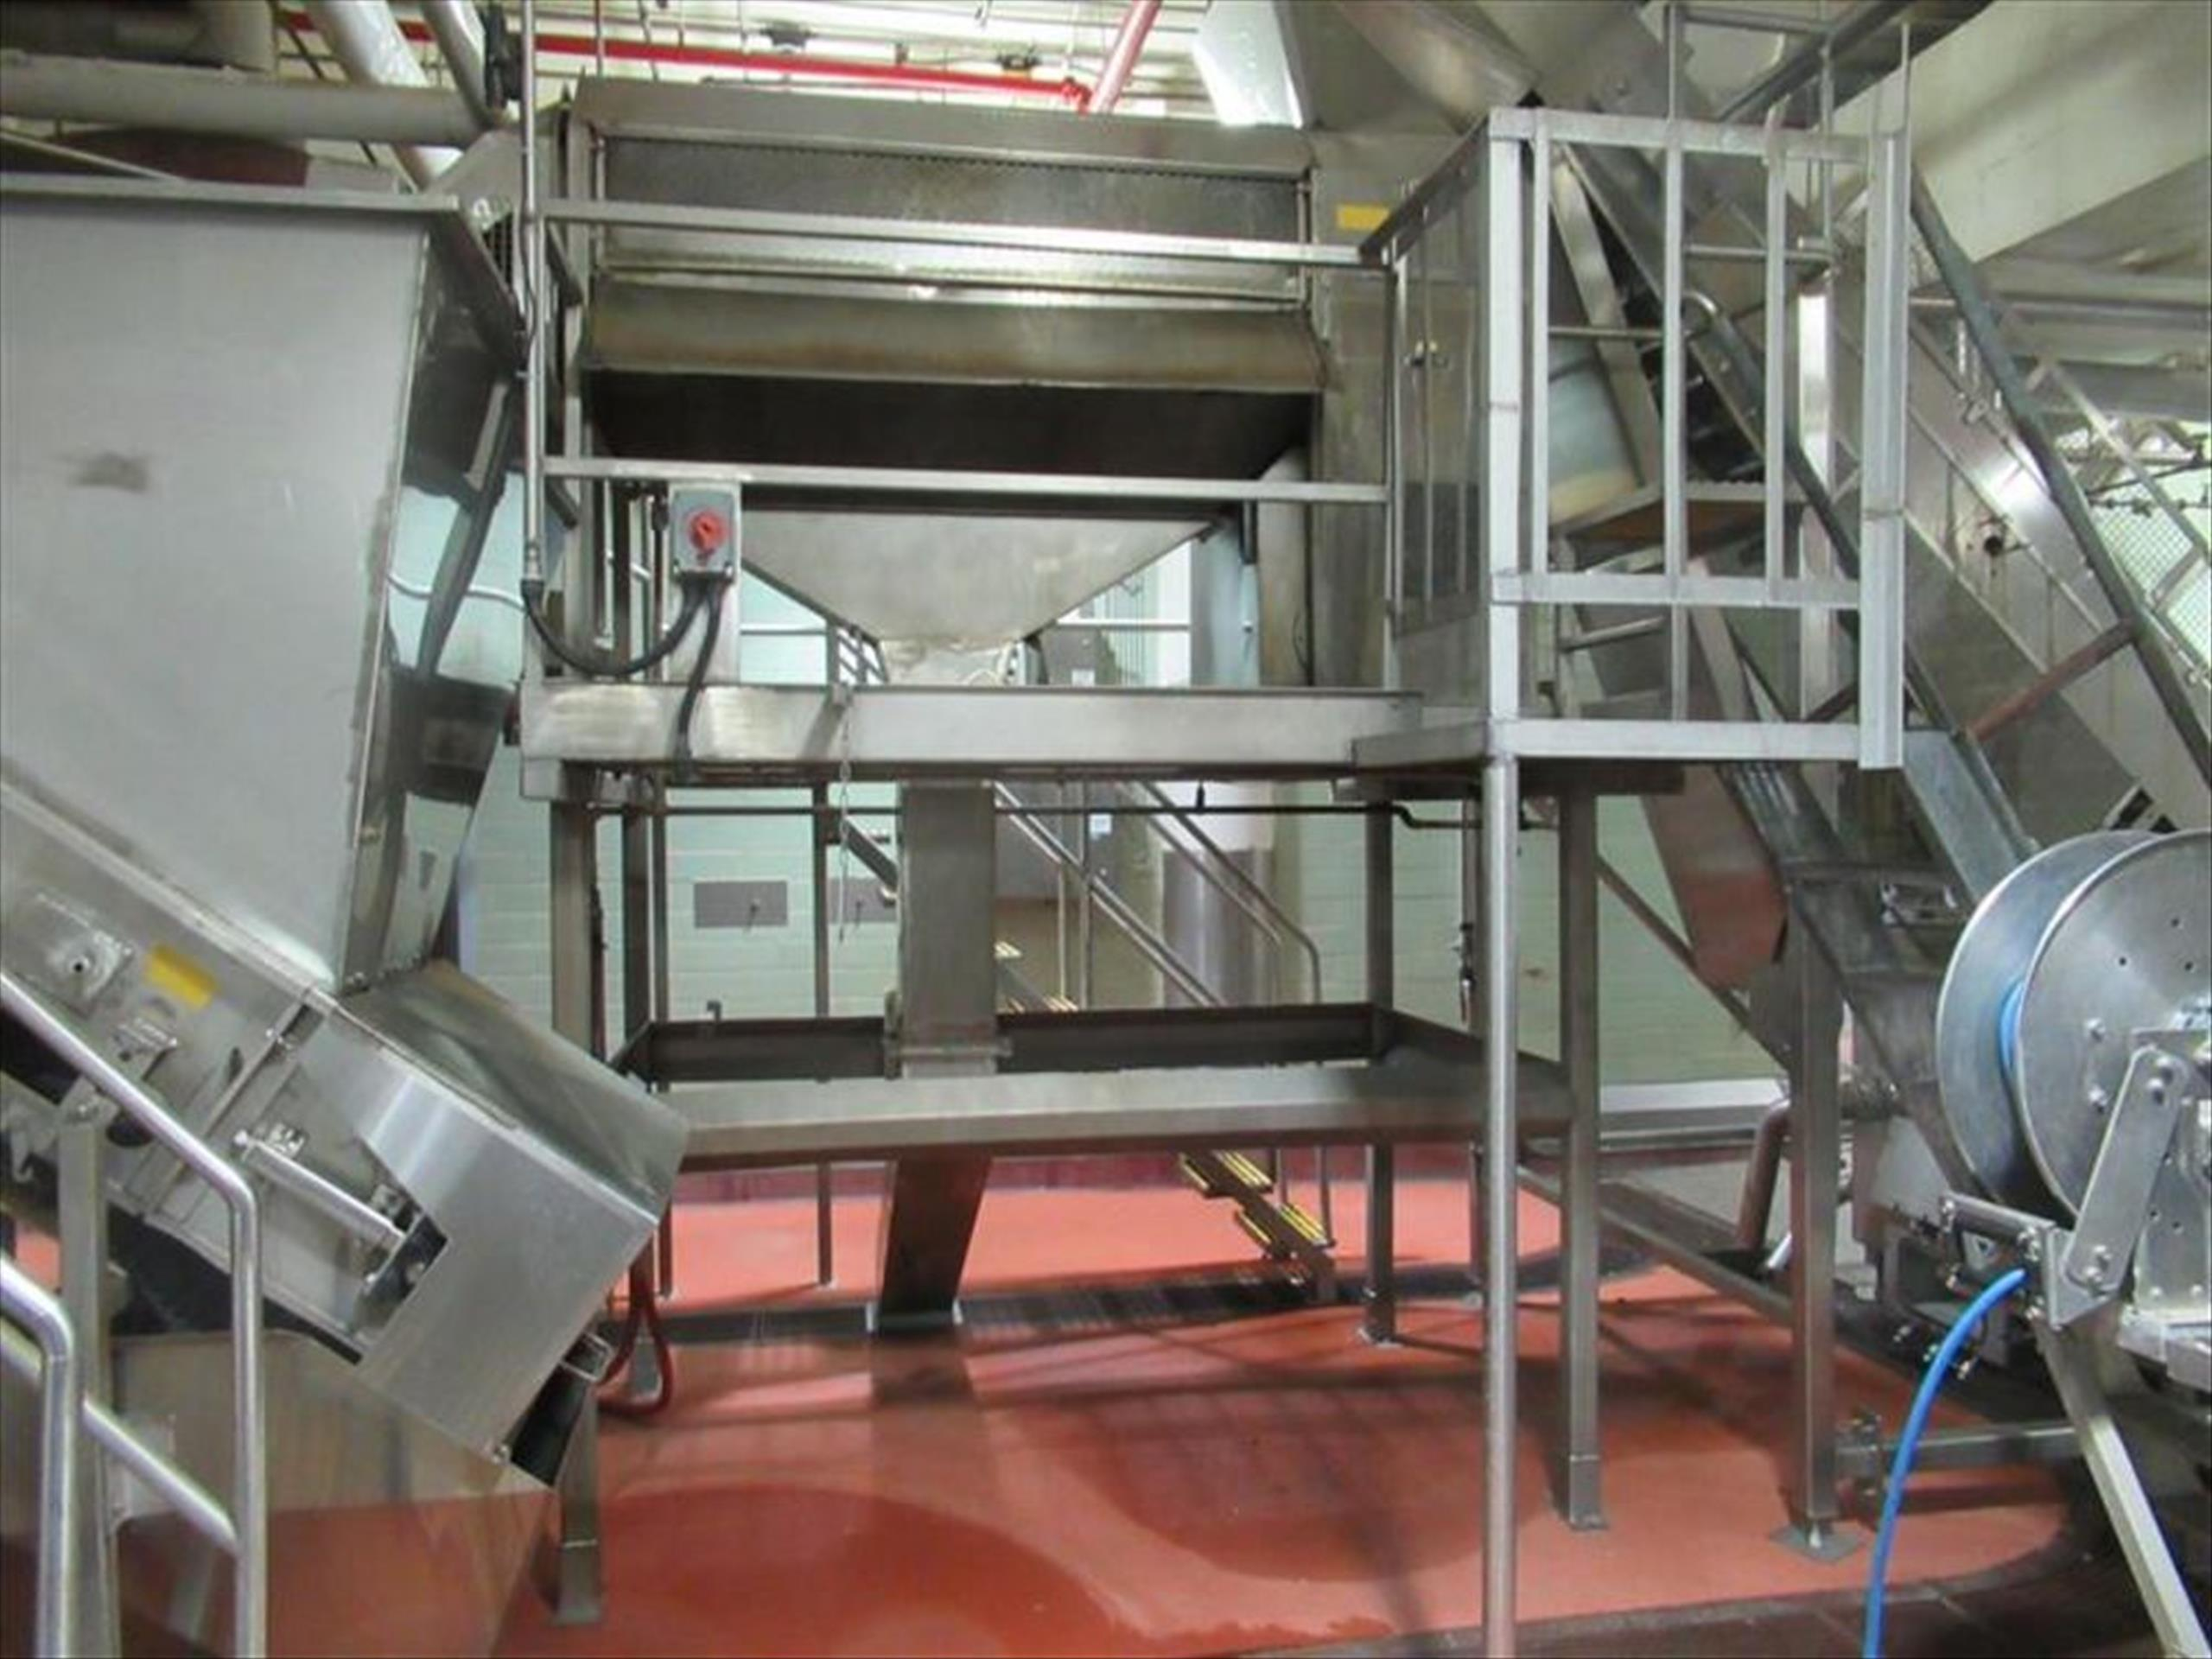 Abrasive peeler continuous washing feeling machine, 4 brush and 4 abrasive rollers, approx 4000 - Image 4 of 4